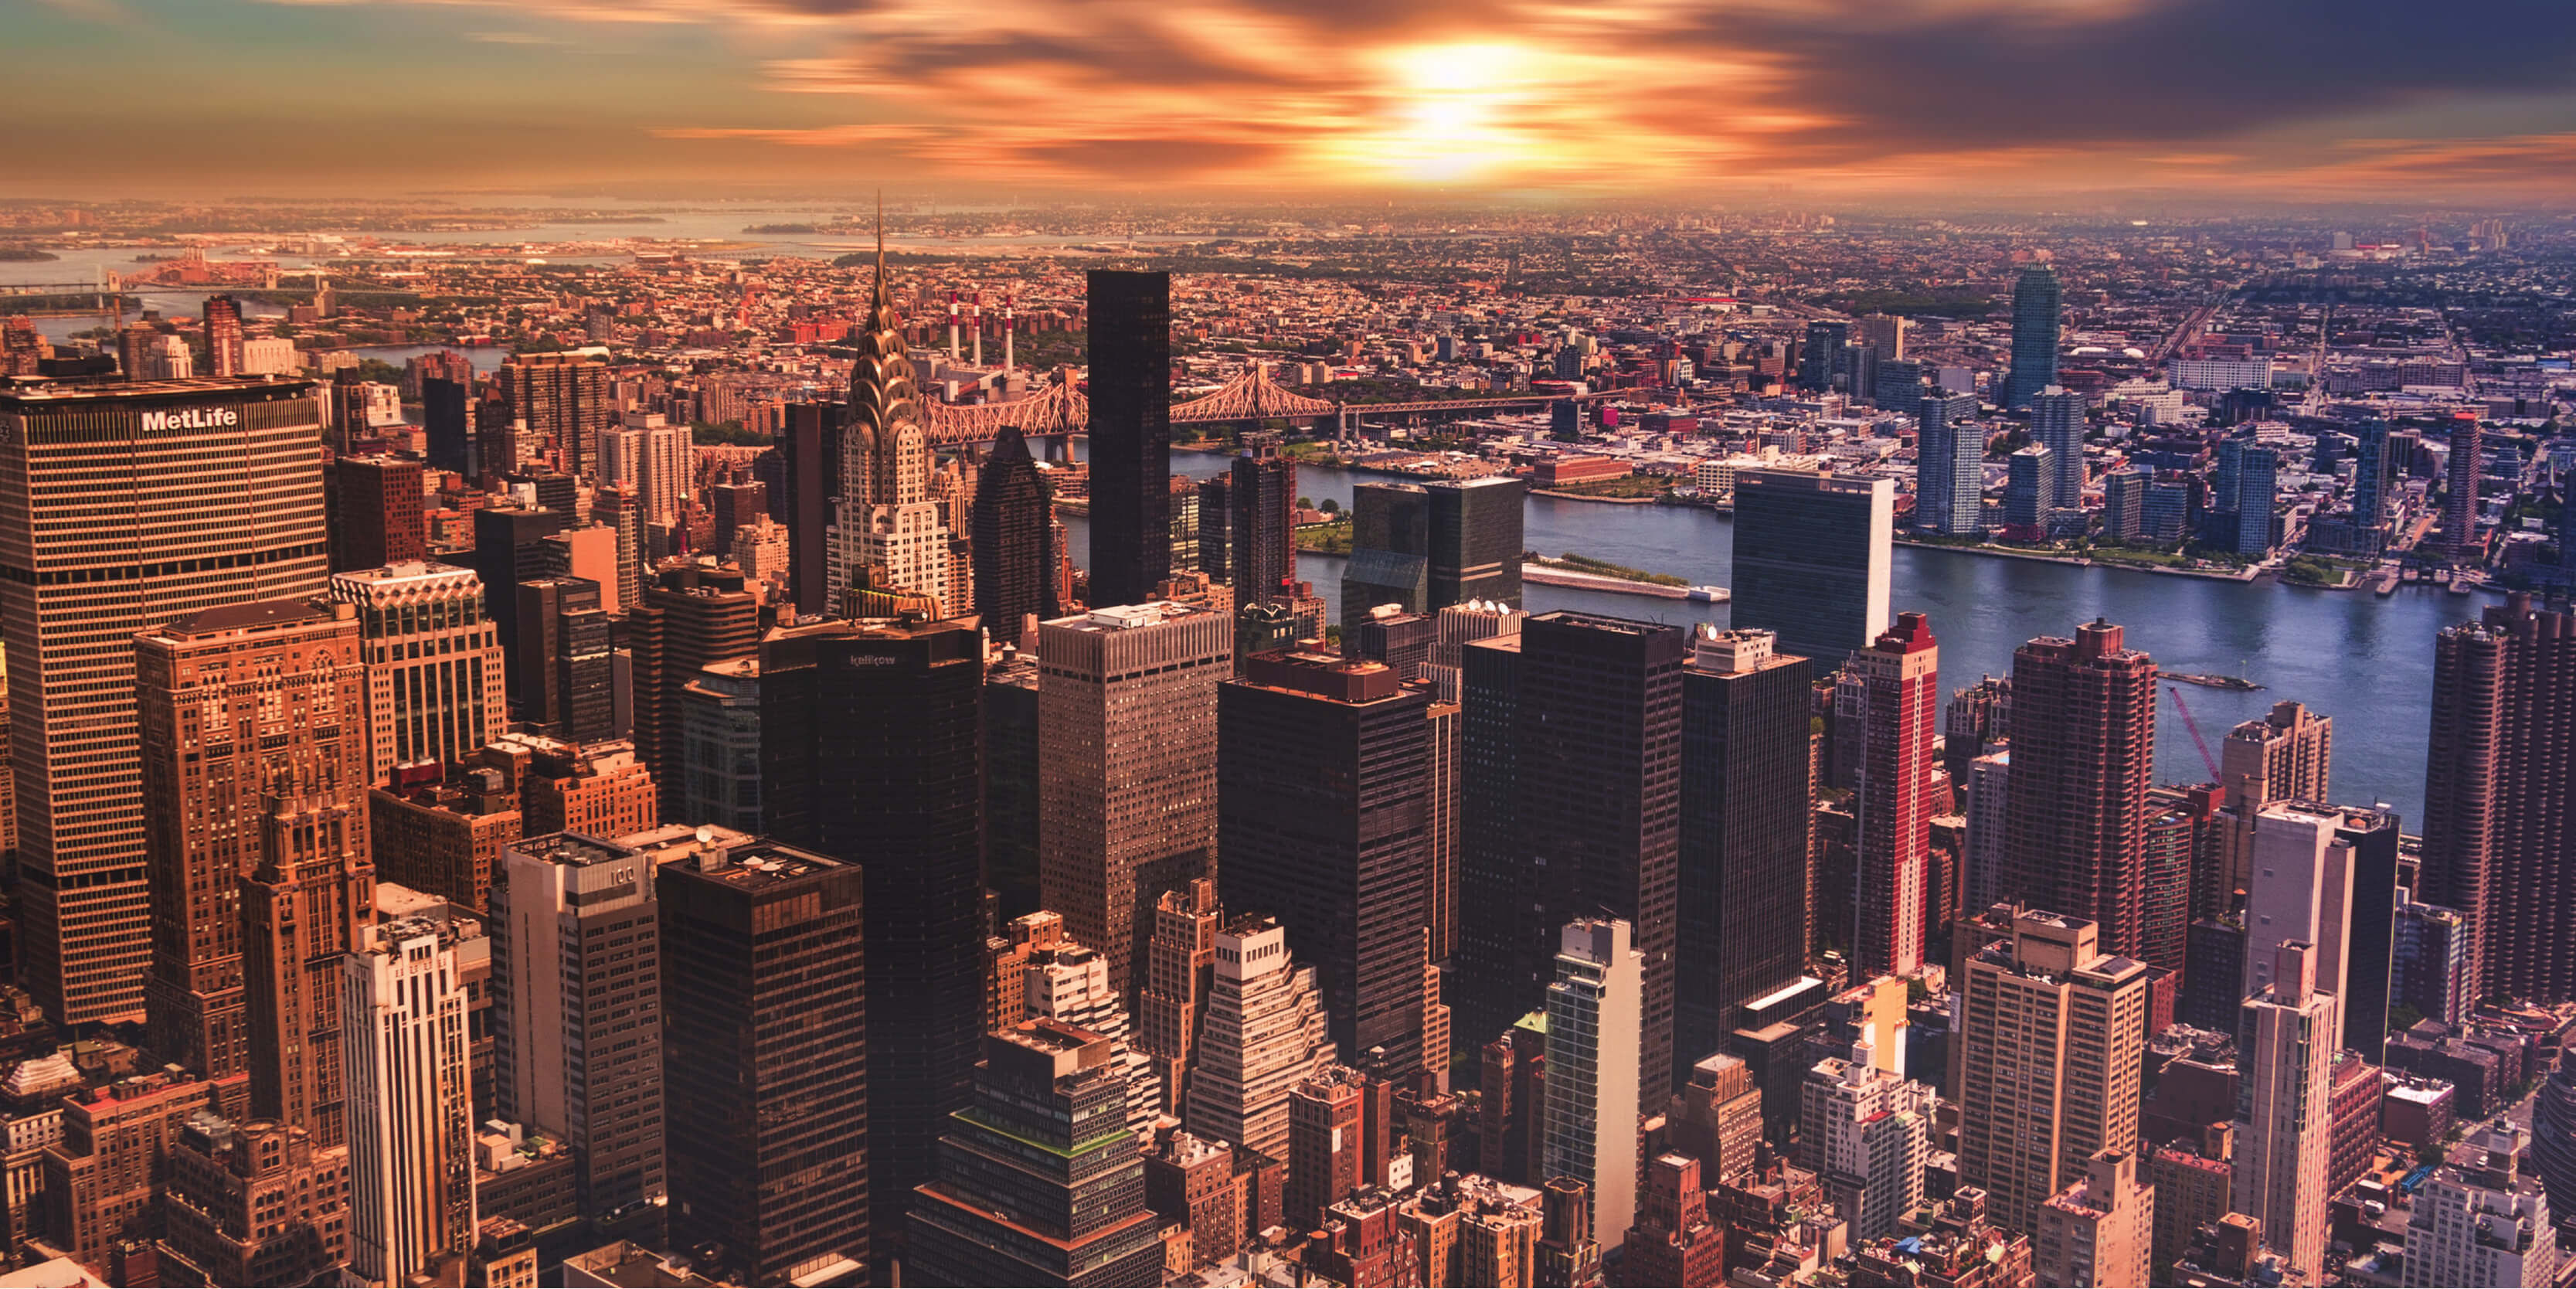 A photo of New York City skylines at sunset